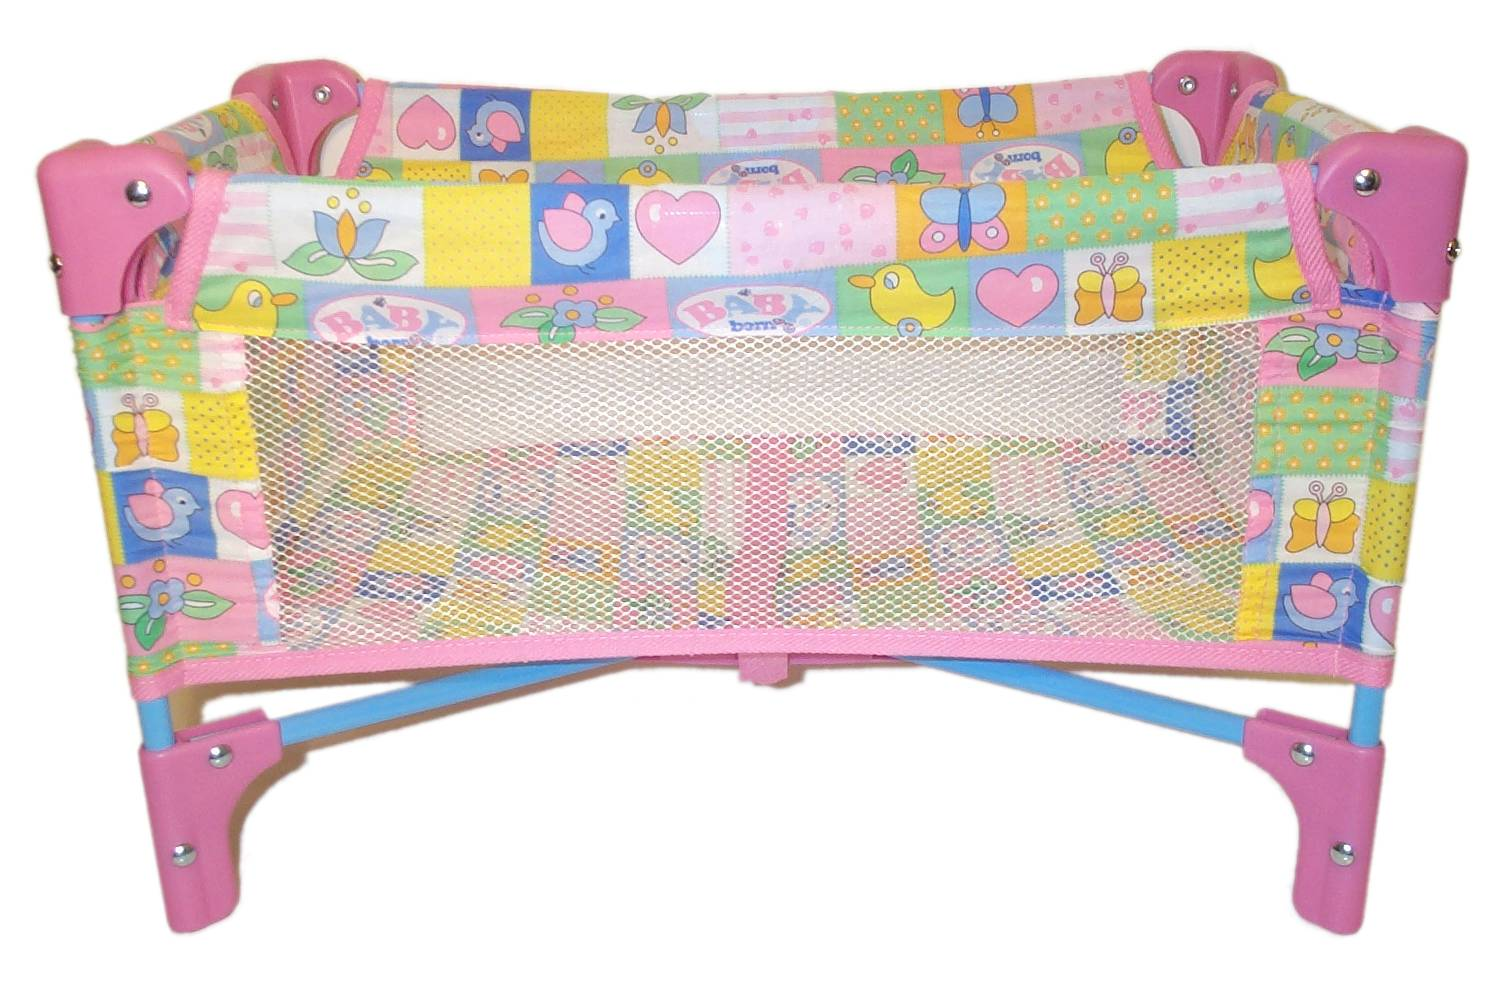 Toy doll crib.jpg